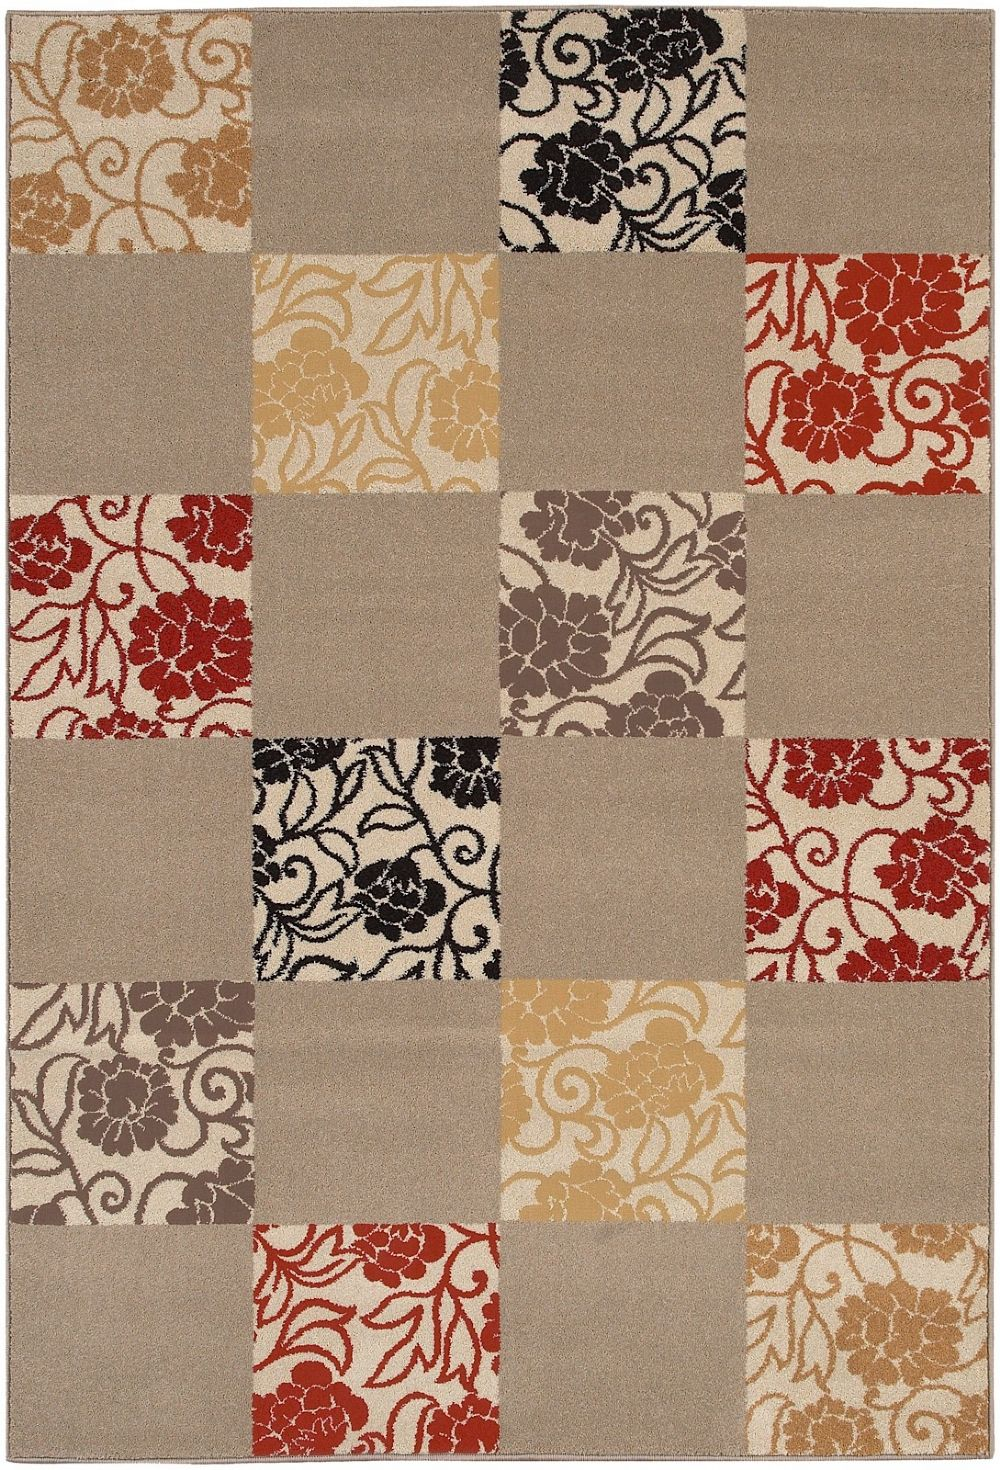 surya rustica country & floral area rug collection